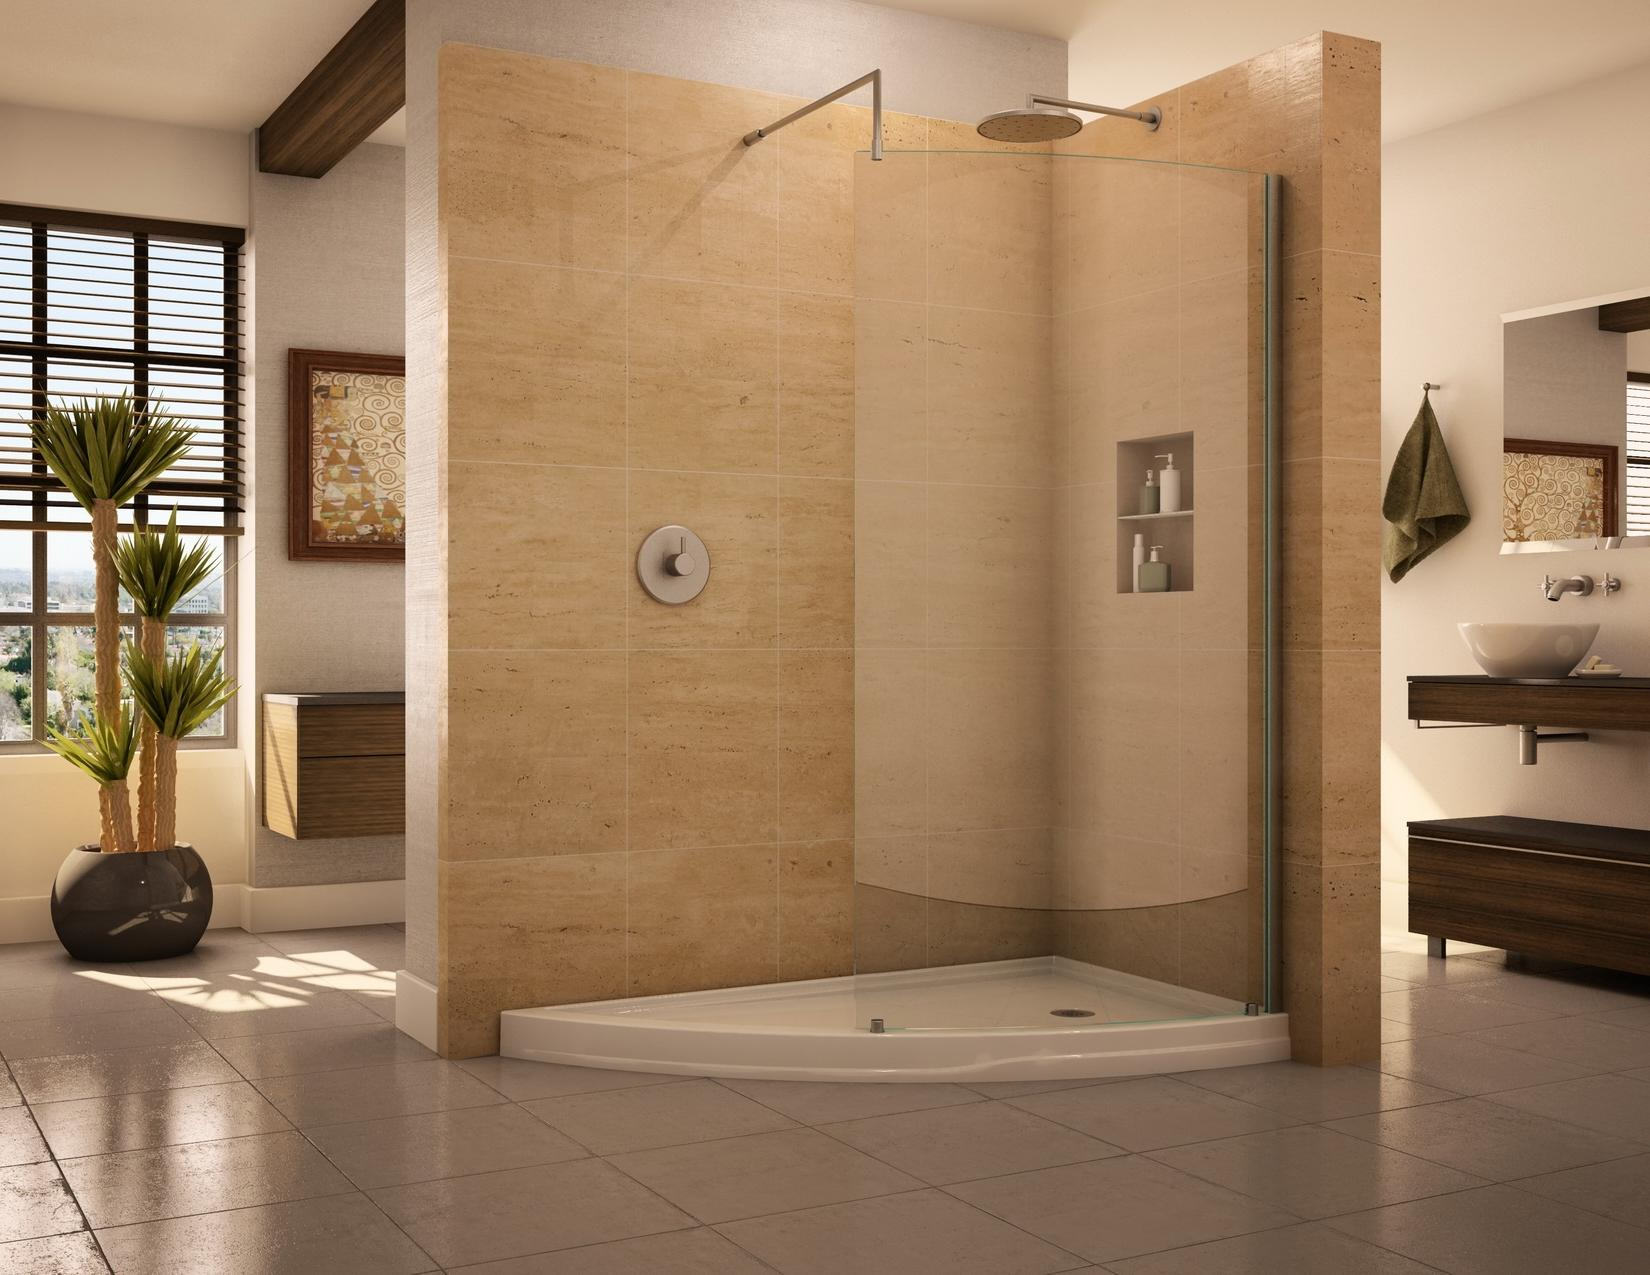 Shower Screens Need a quality Bathroom Shower Screen for your home in Sydney White Bathroom Co stocks a range of bathroom frameless shower screen Call now!